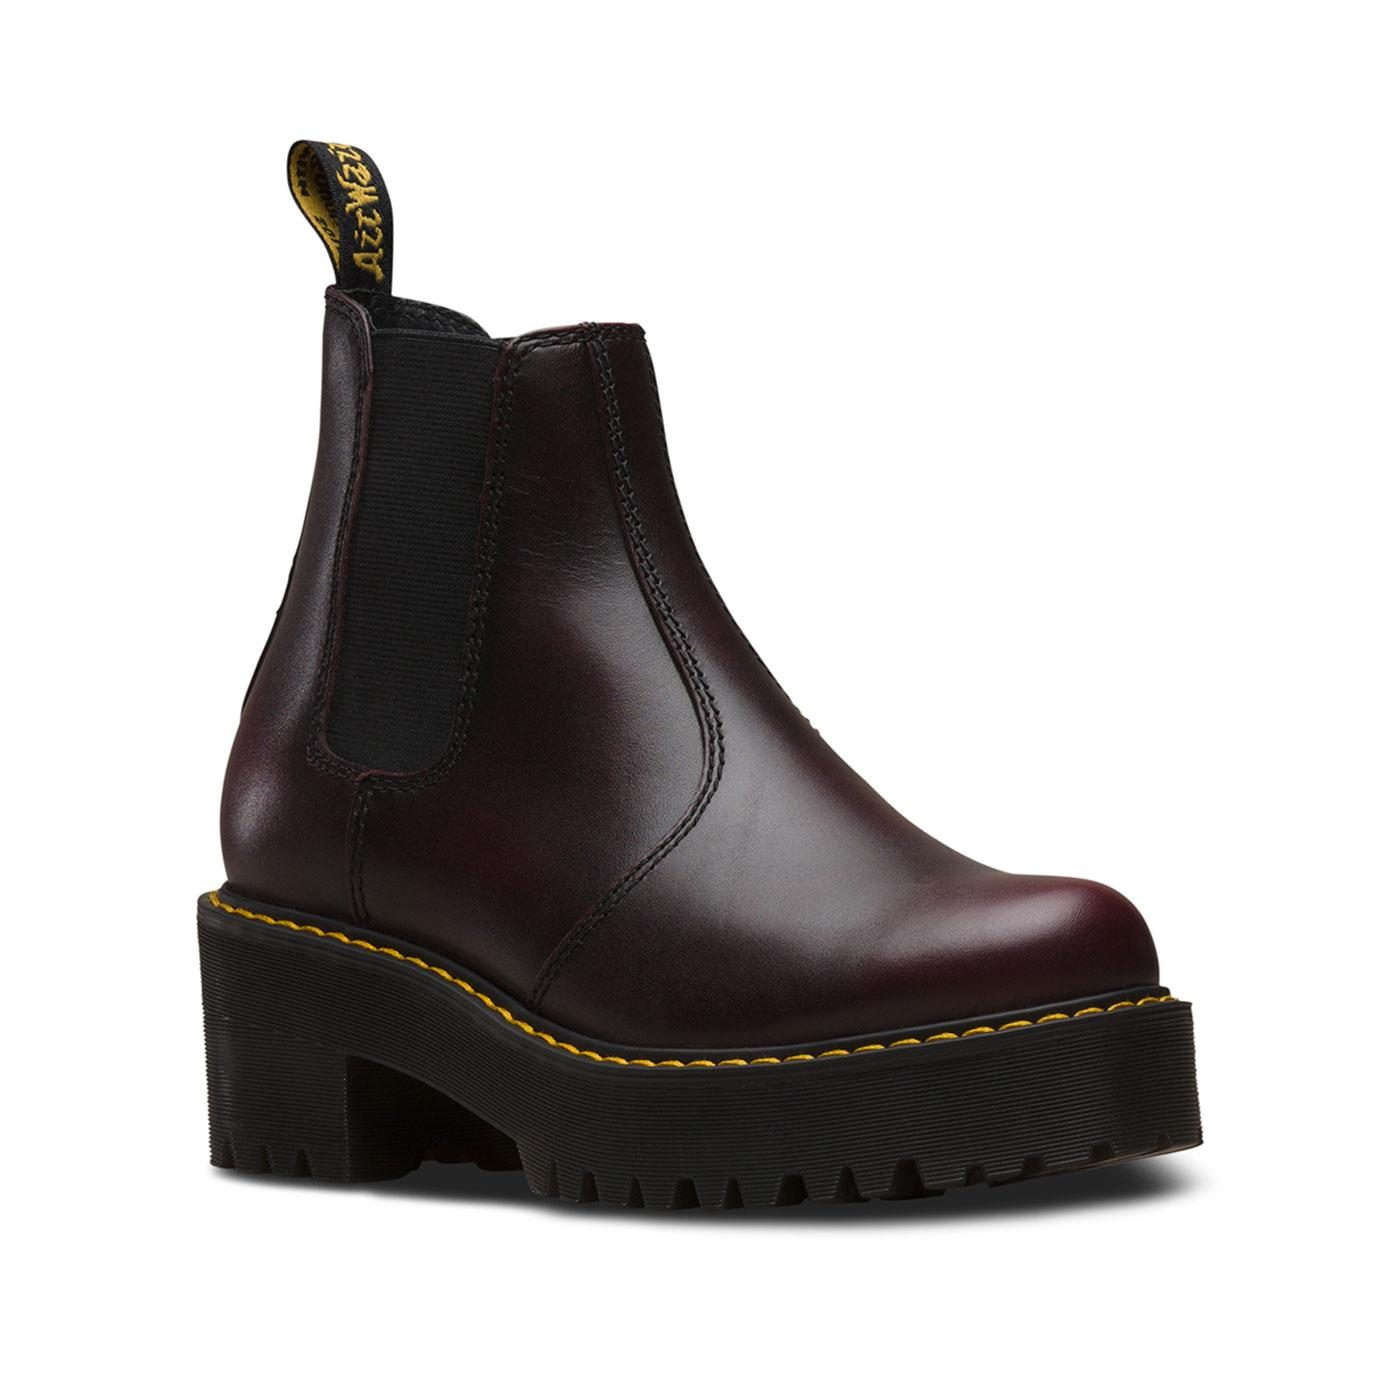 Rometty DR MARTENS WOMENS Vintage Boots Burgundy